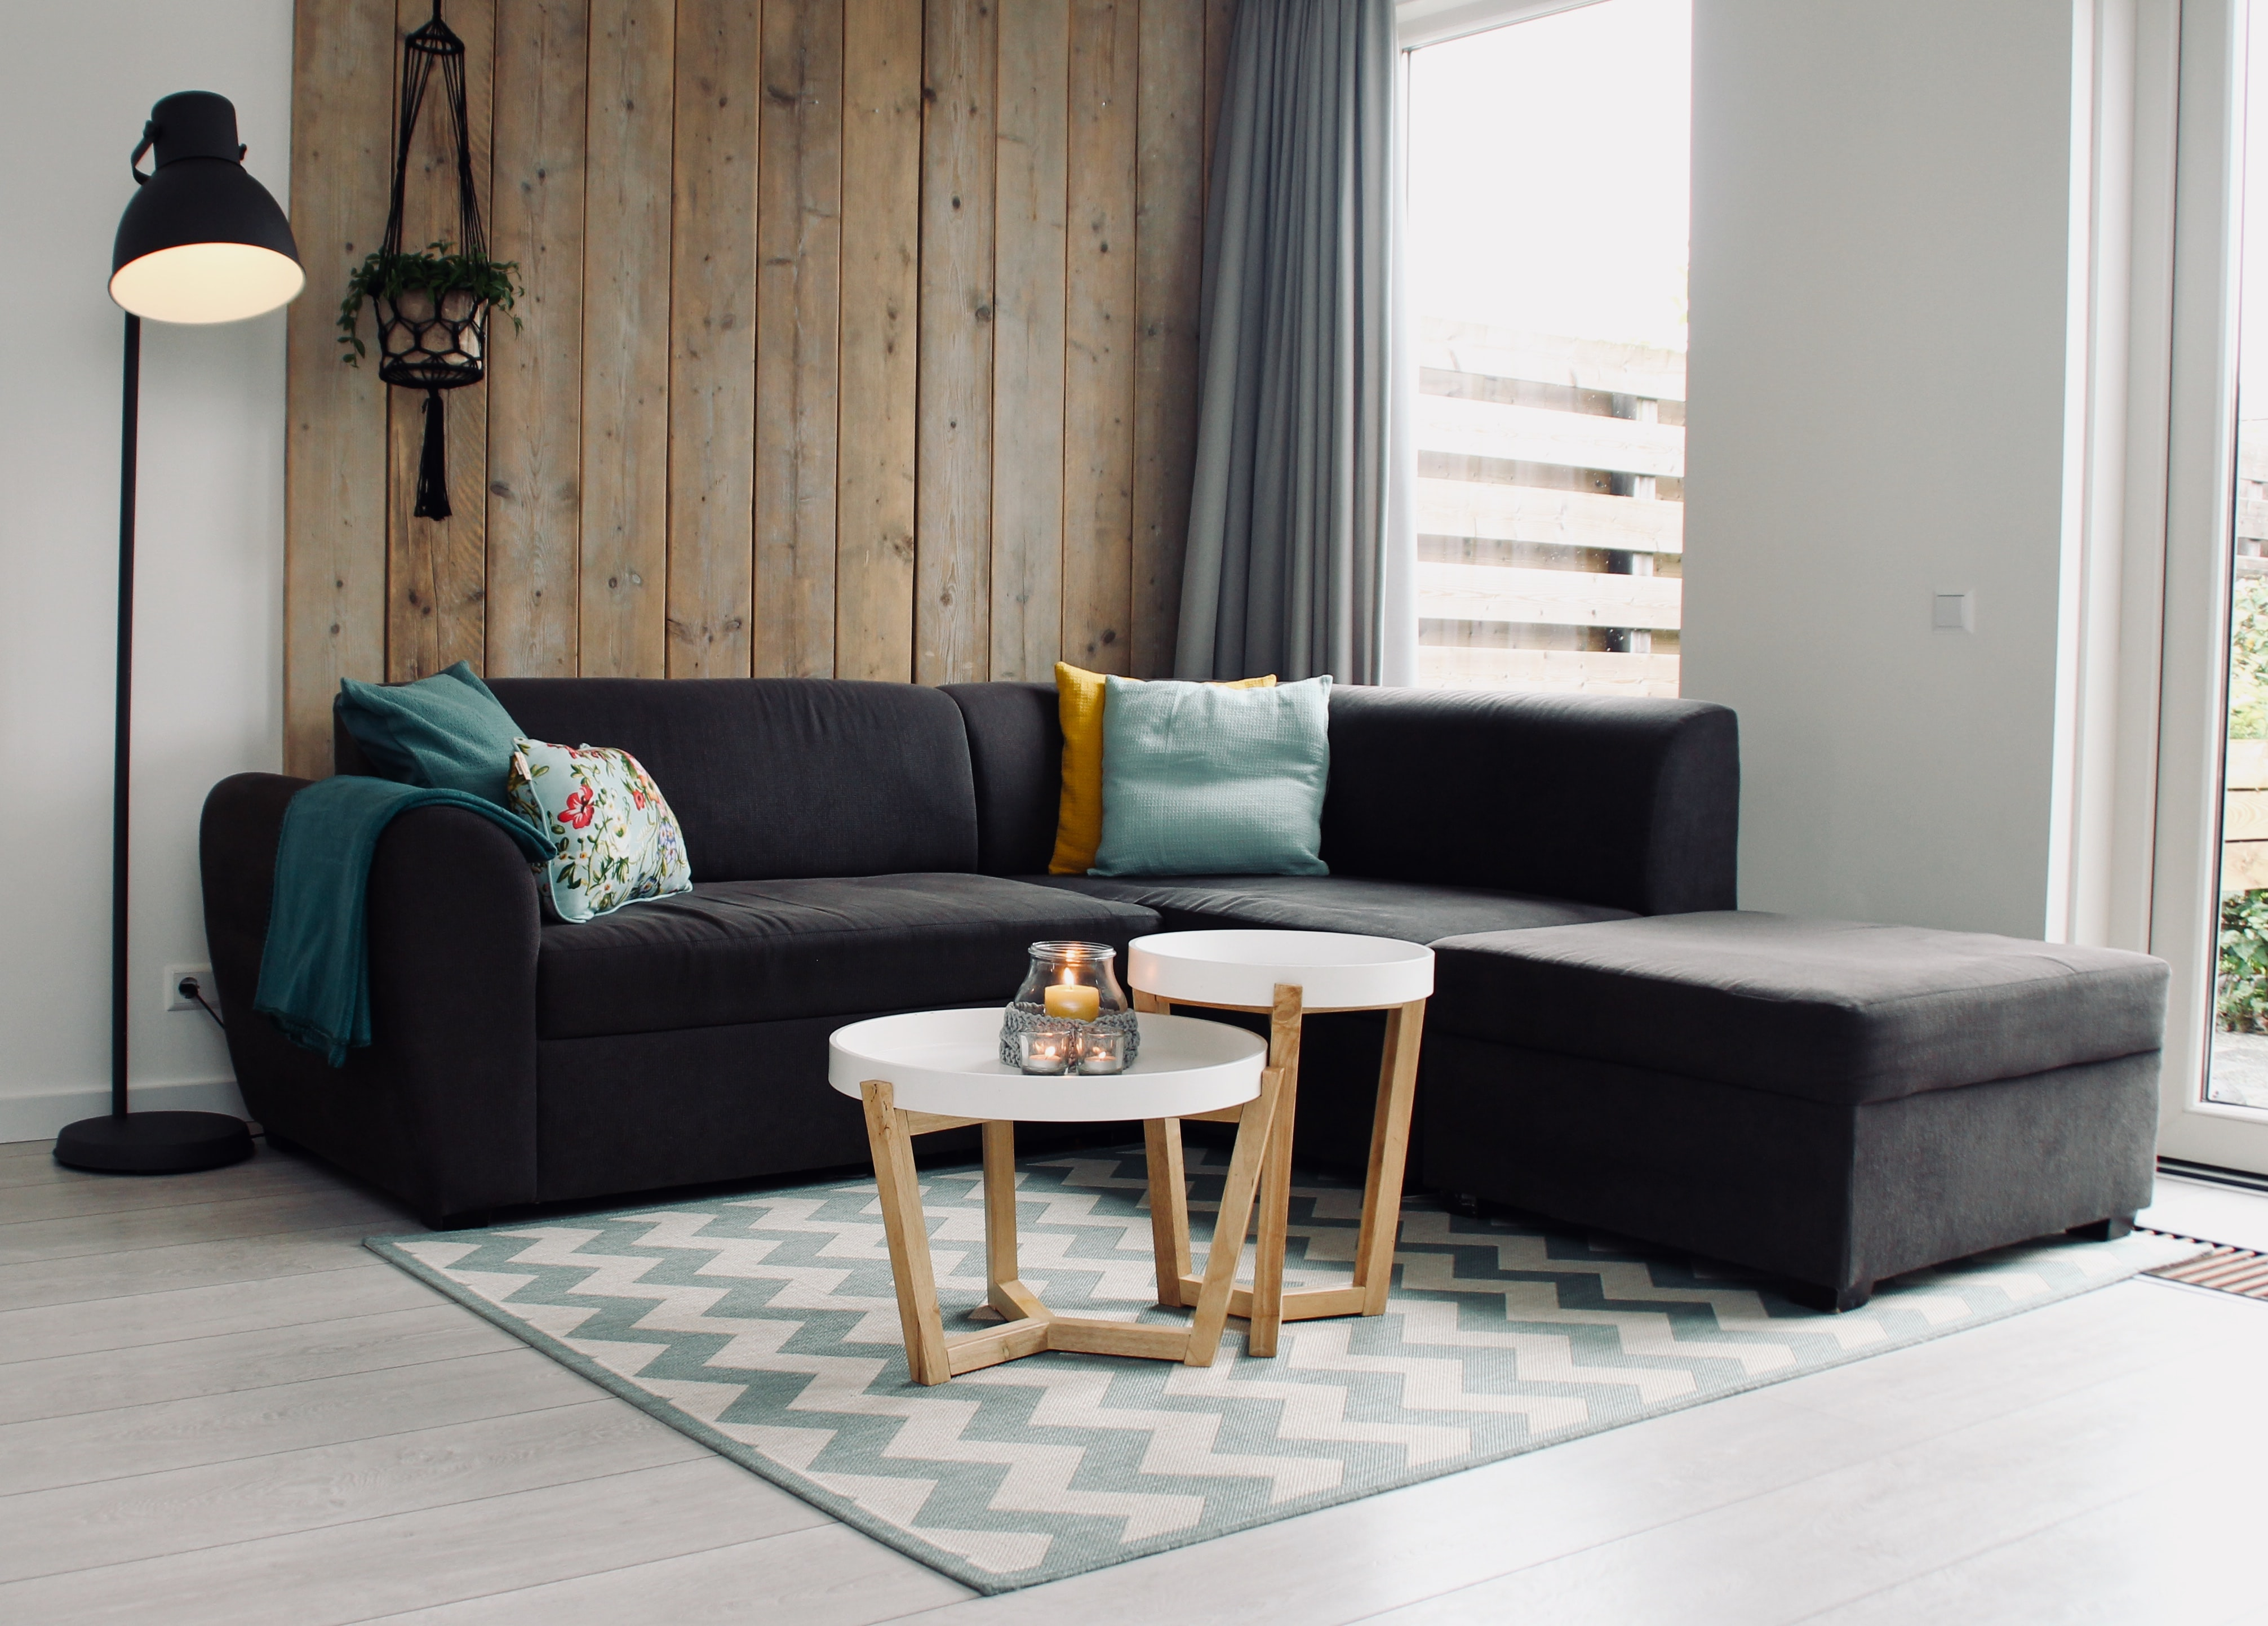 light candle on round white coffee table and sectional sofa